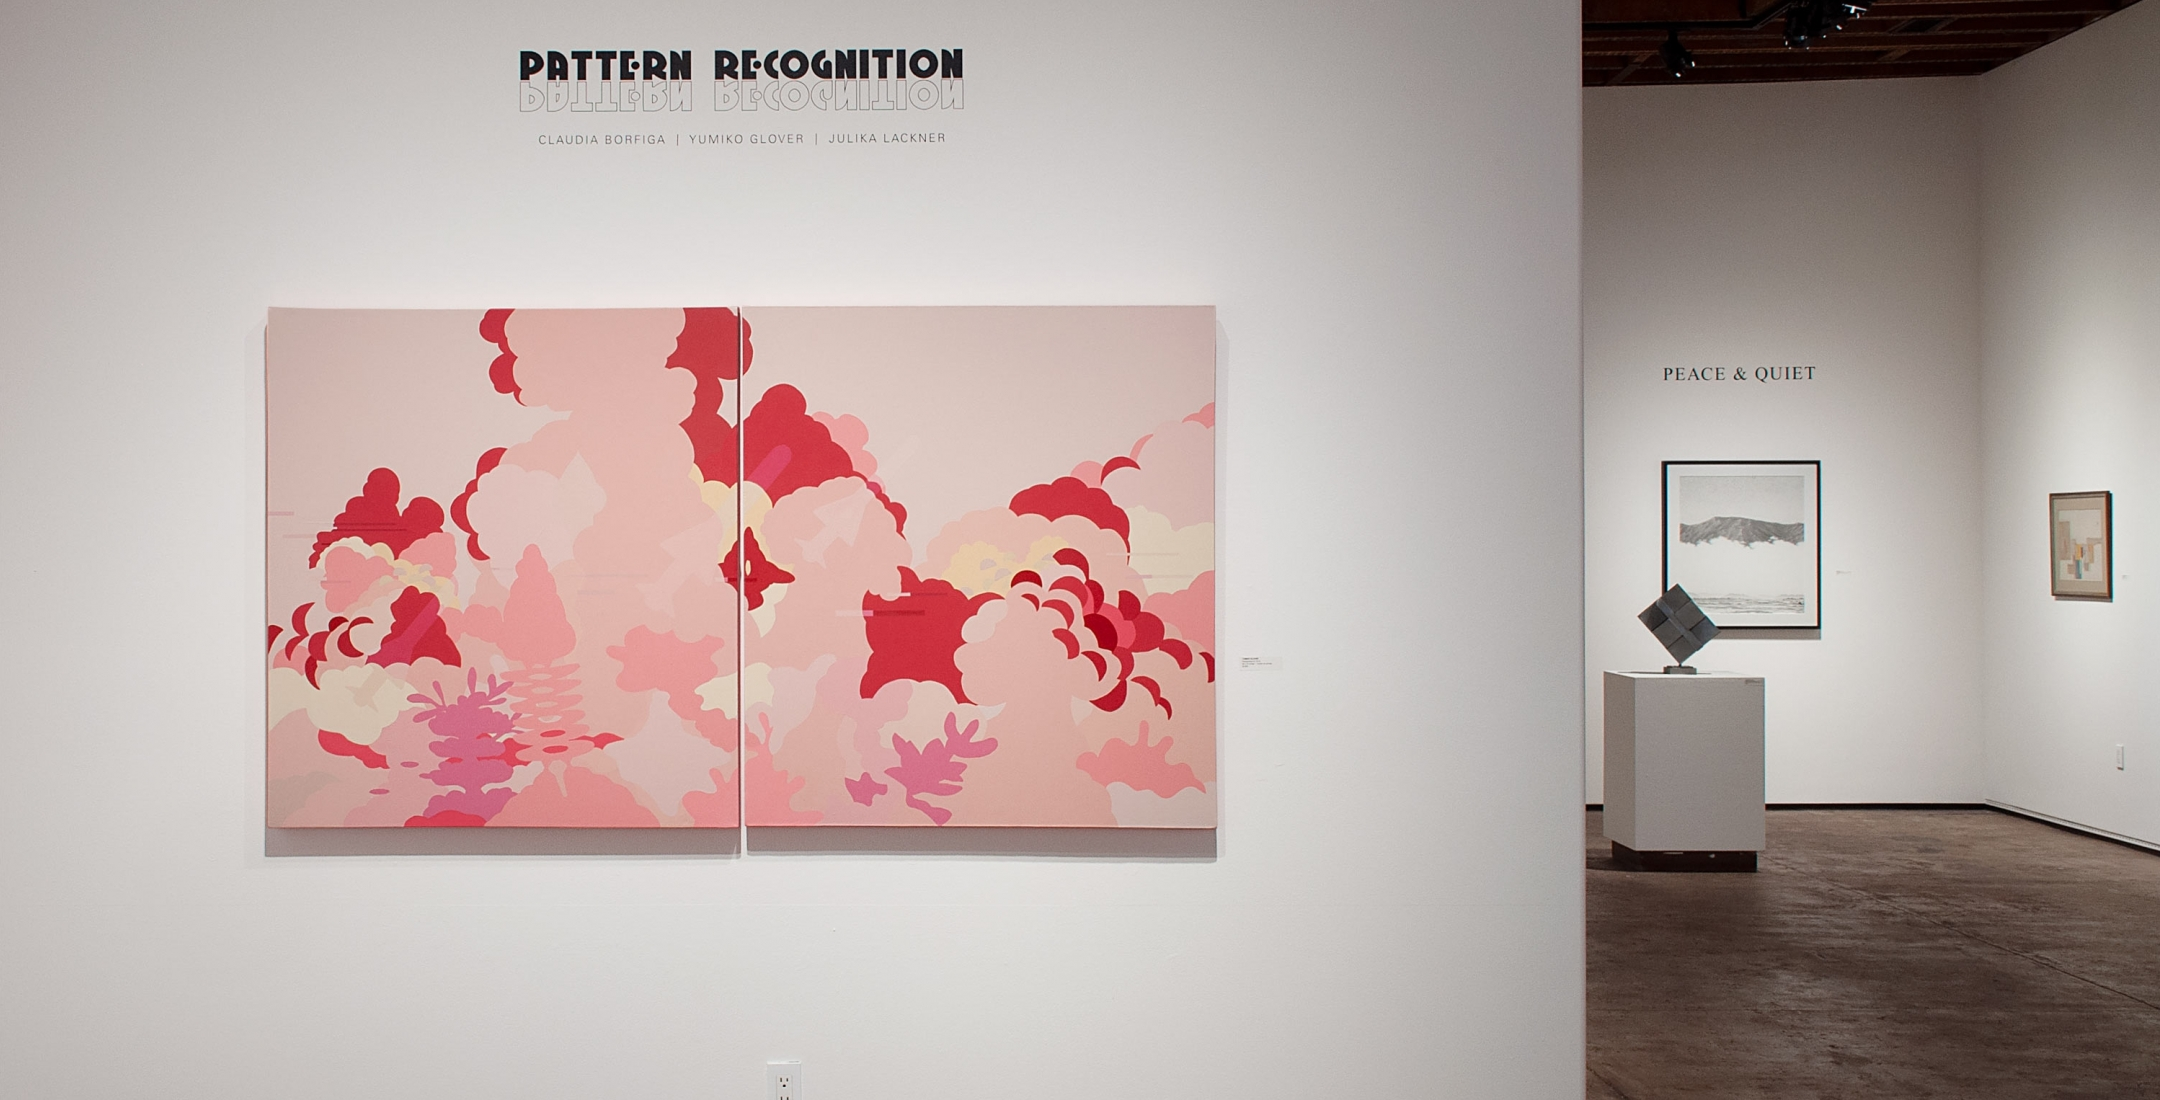 PATTERN RECOGNITION: Claudia Borfiga | Yumiko Glover | Julika Lackner